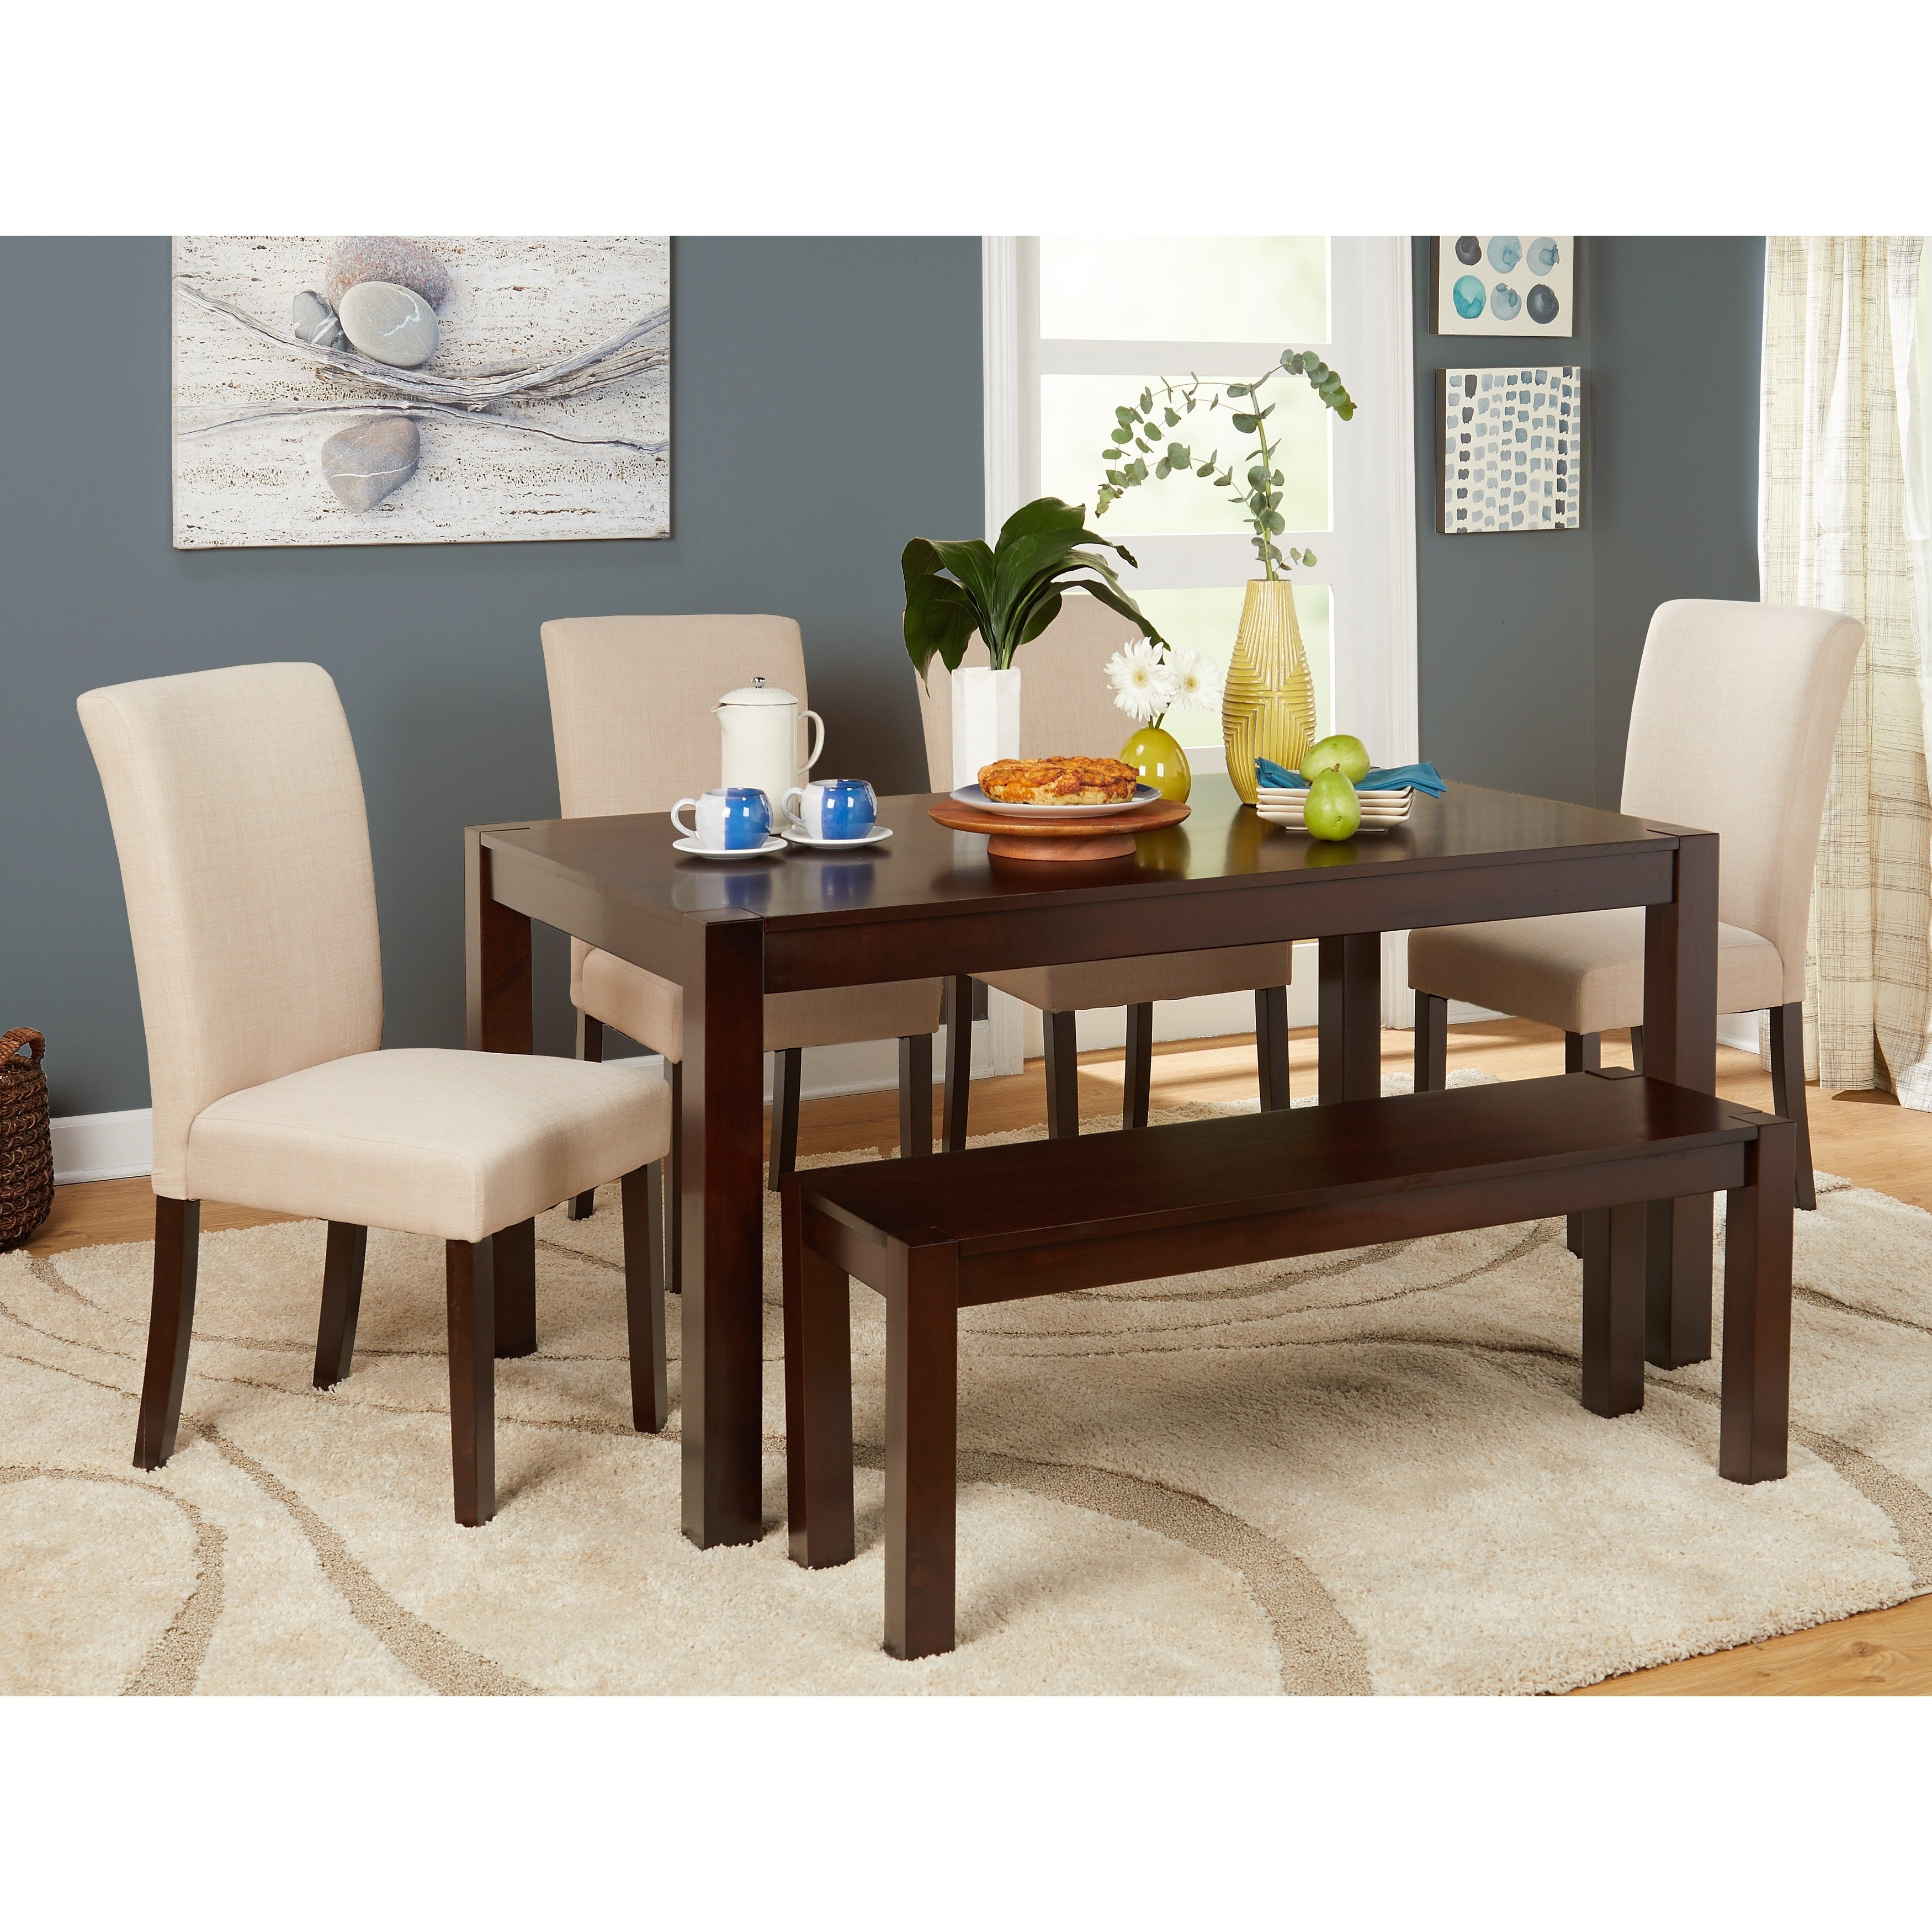 Simple Living Axis 6 Piece Dining Set With Bench